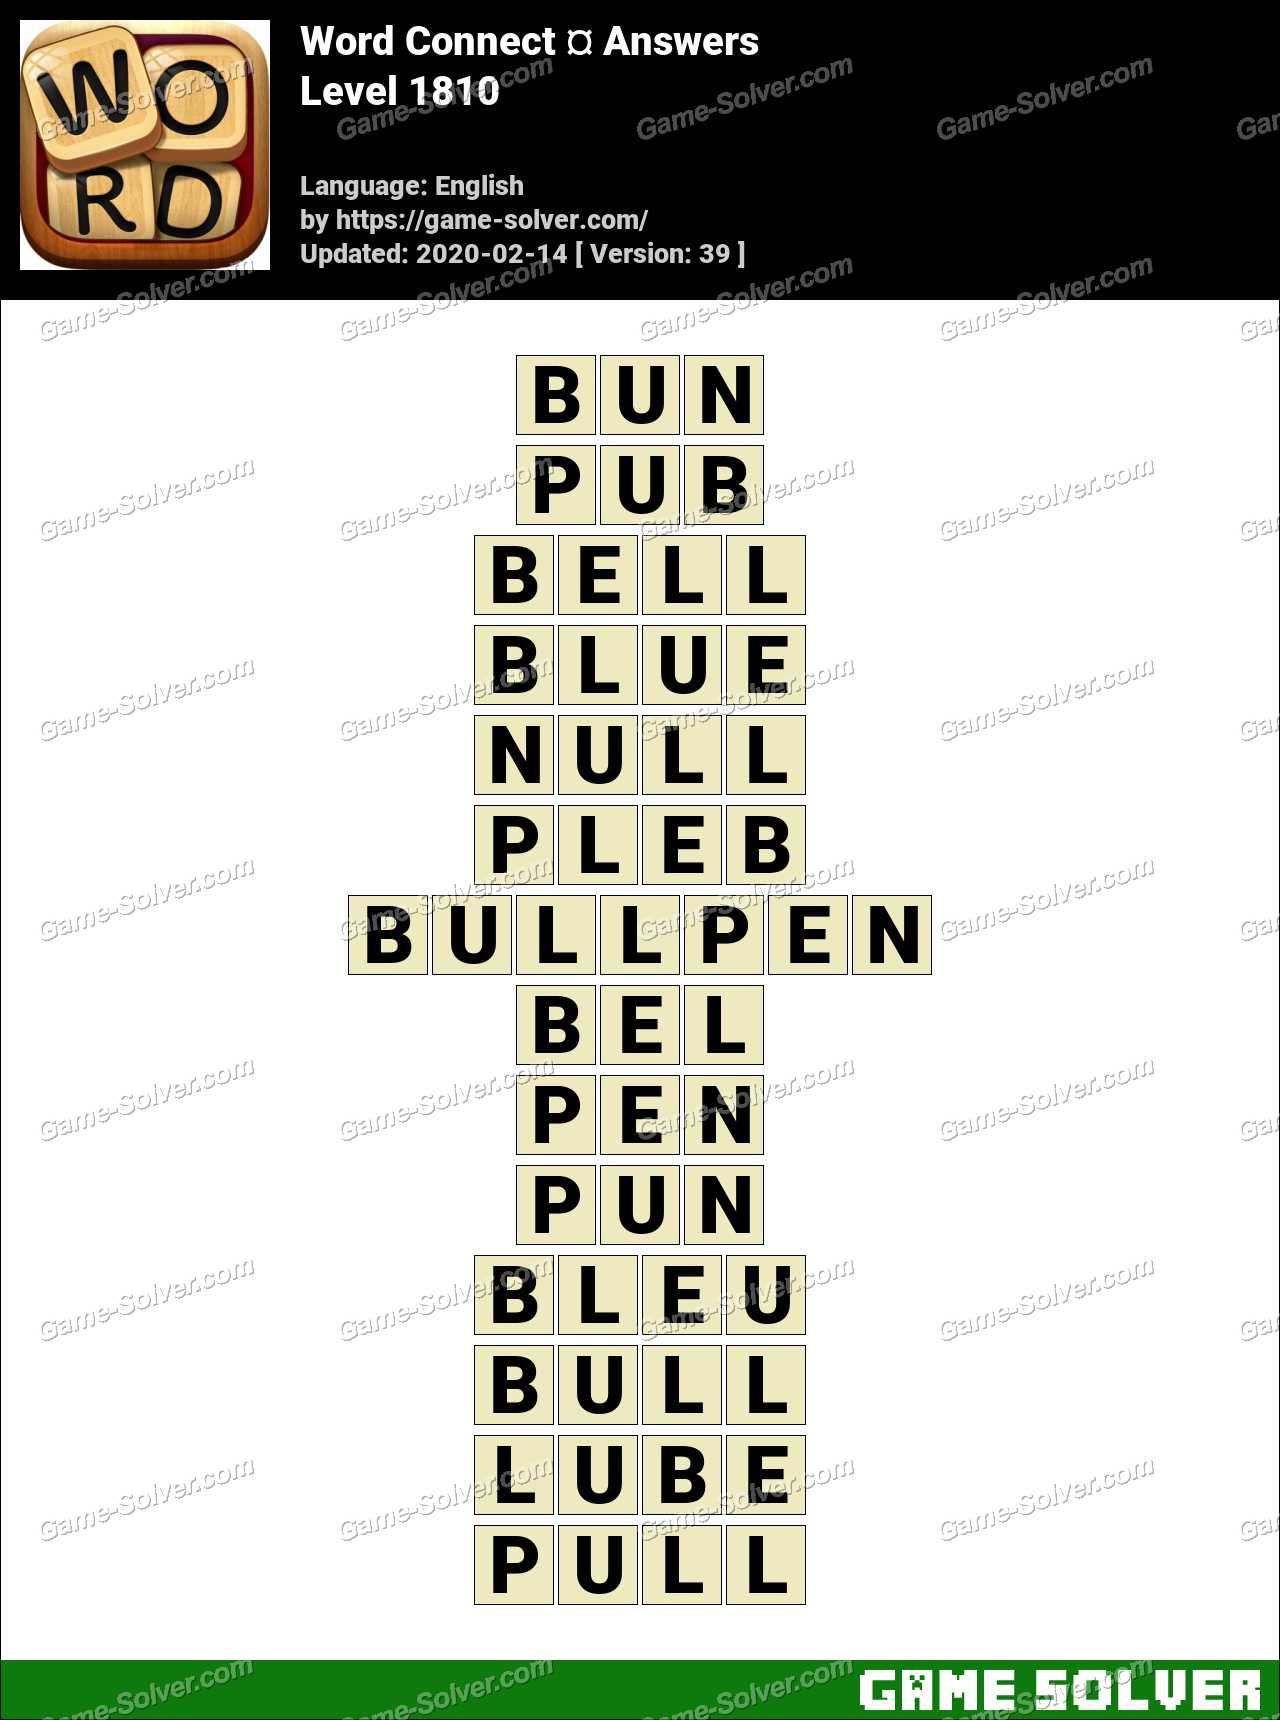 Word Connect Level 1810 Answers